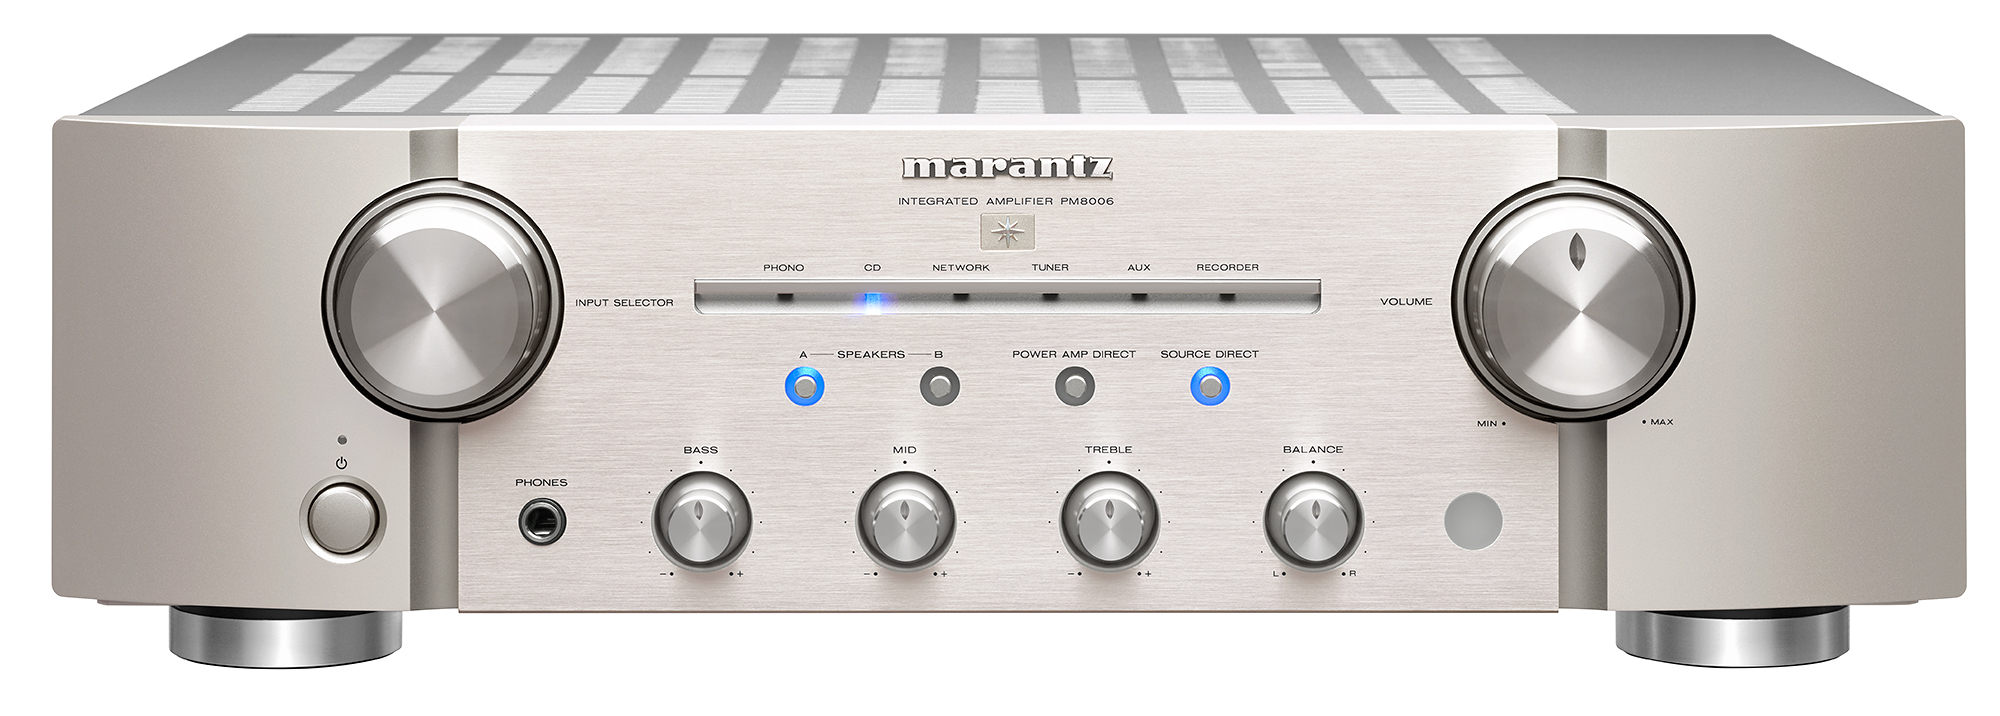 Marantz Uk Pm8006 Active Microphone Preamplifier Using Lf356 With A Fully Discrete Current Feedback Design The Integrated Amplifier Is Perfect For Audiophiles Wanting Both Excellent Music Quality And Flexible